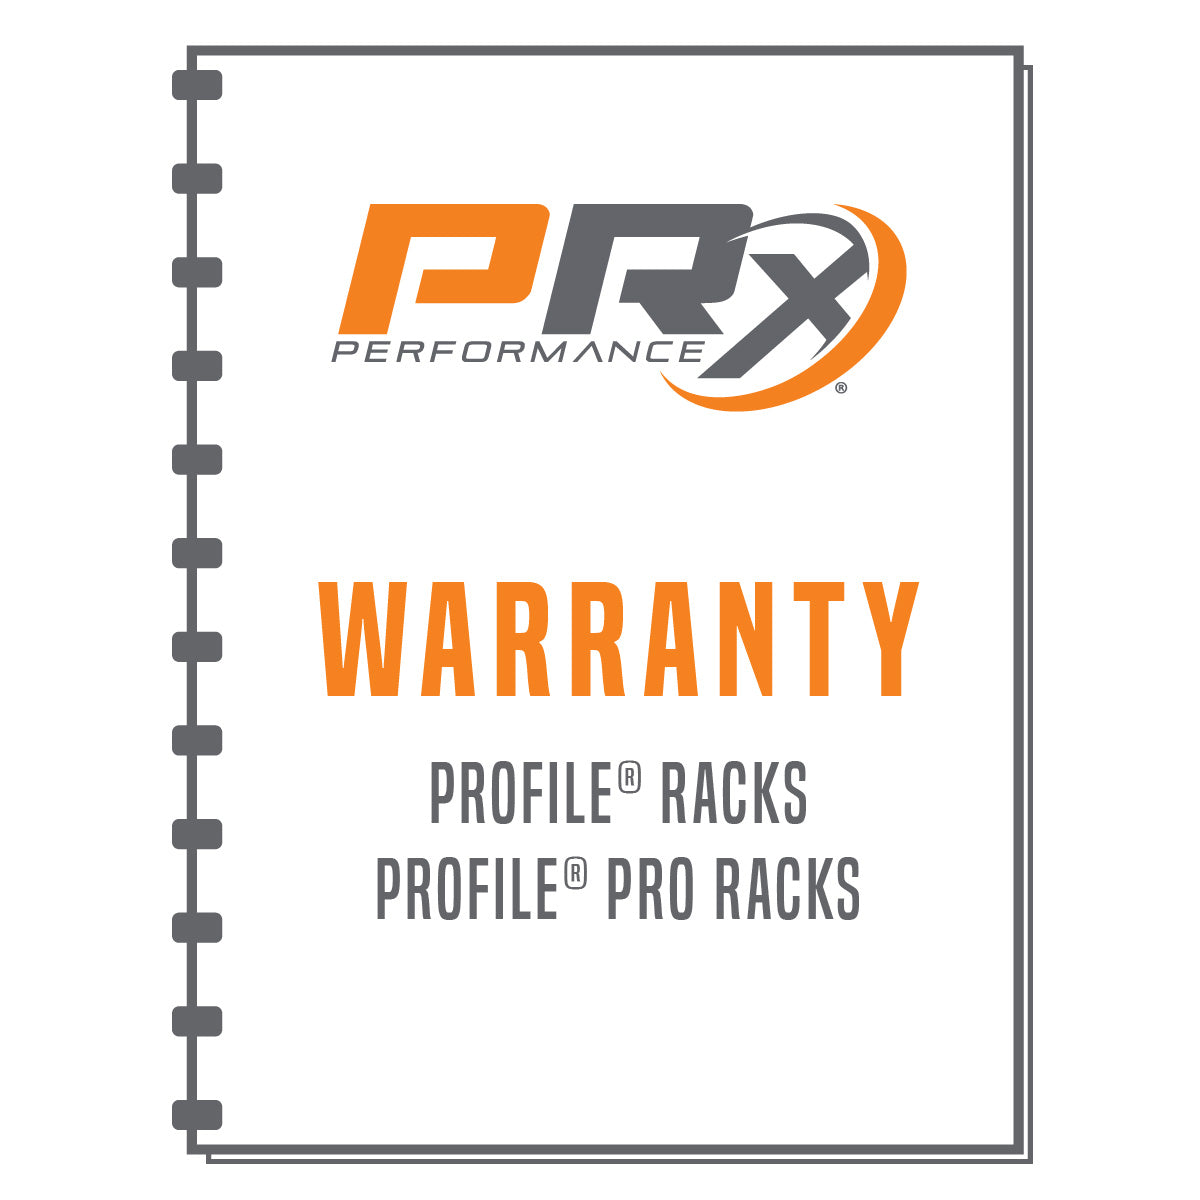 PRx Performance Profile and Profile PRO Rack Warranty